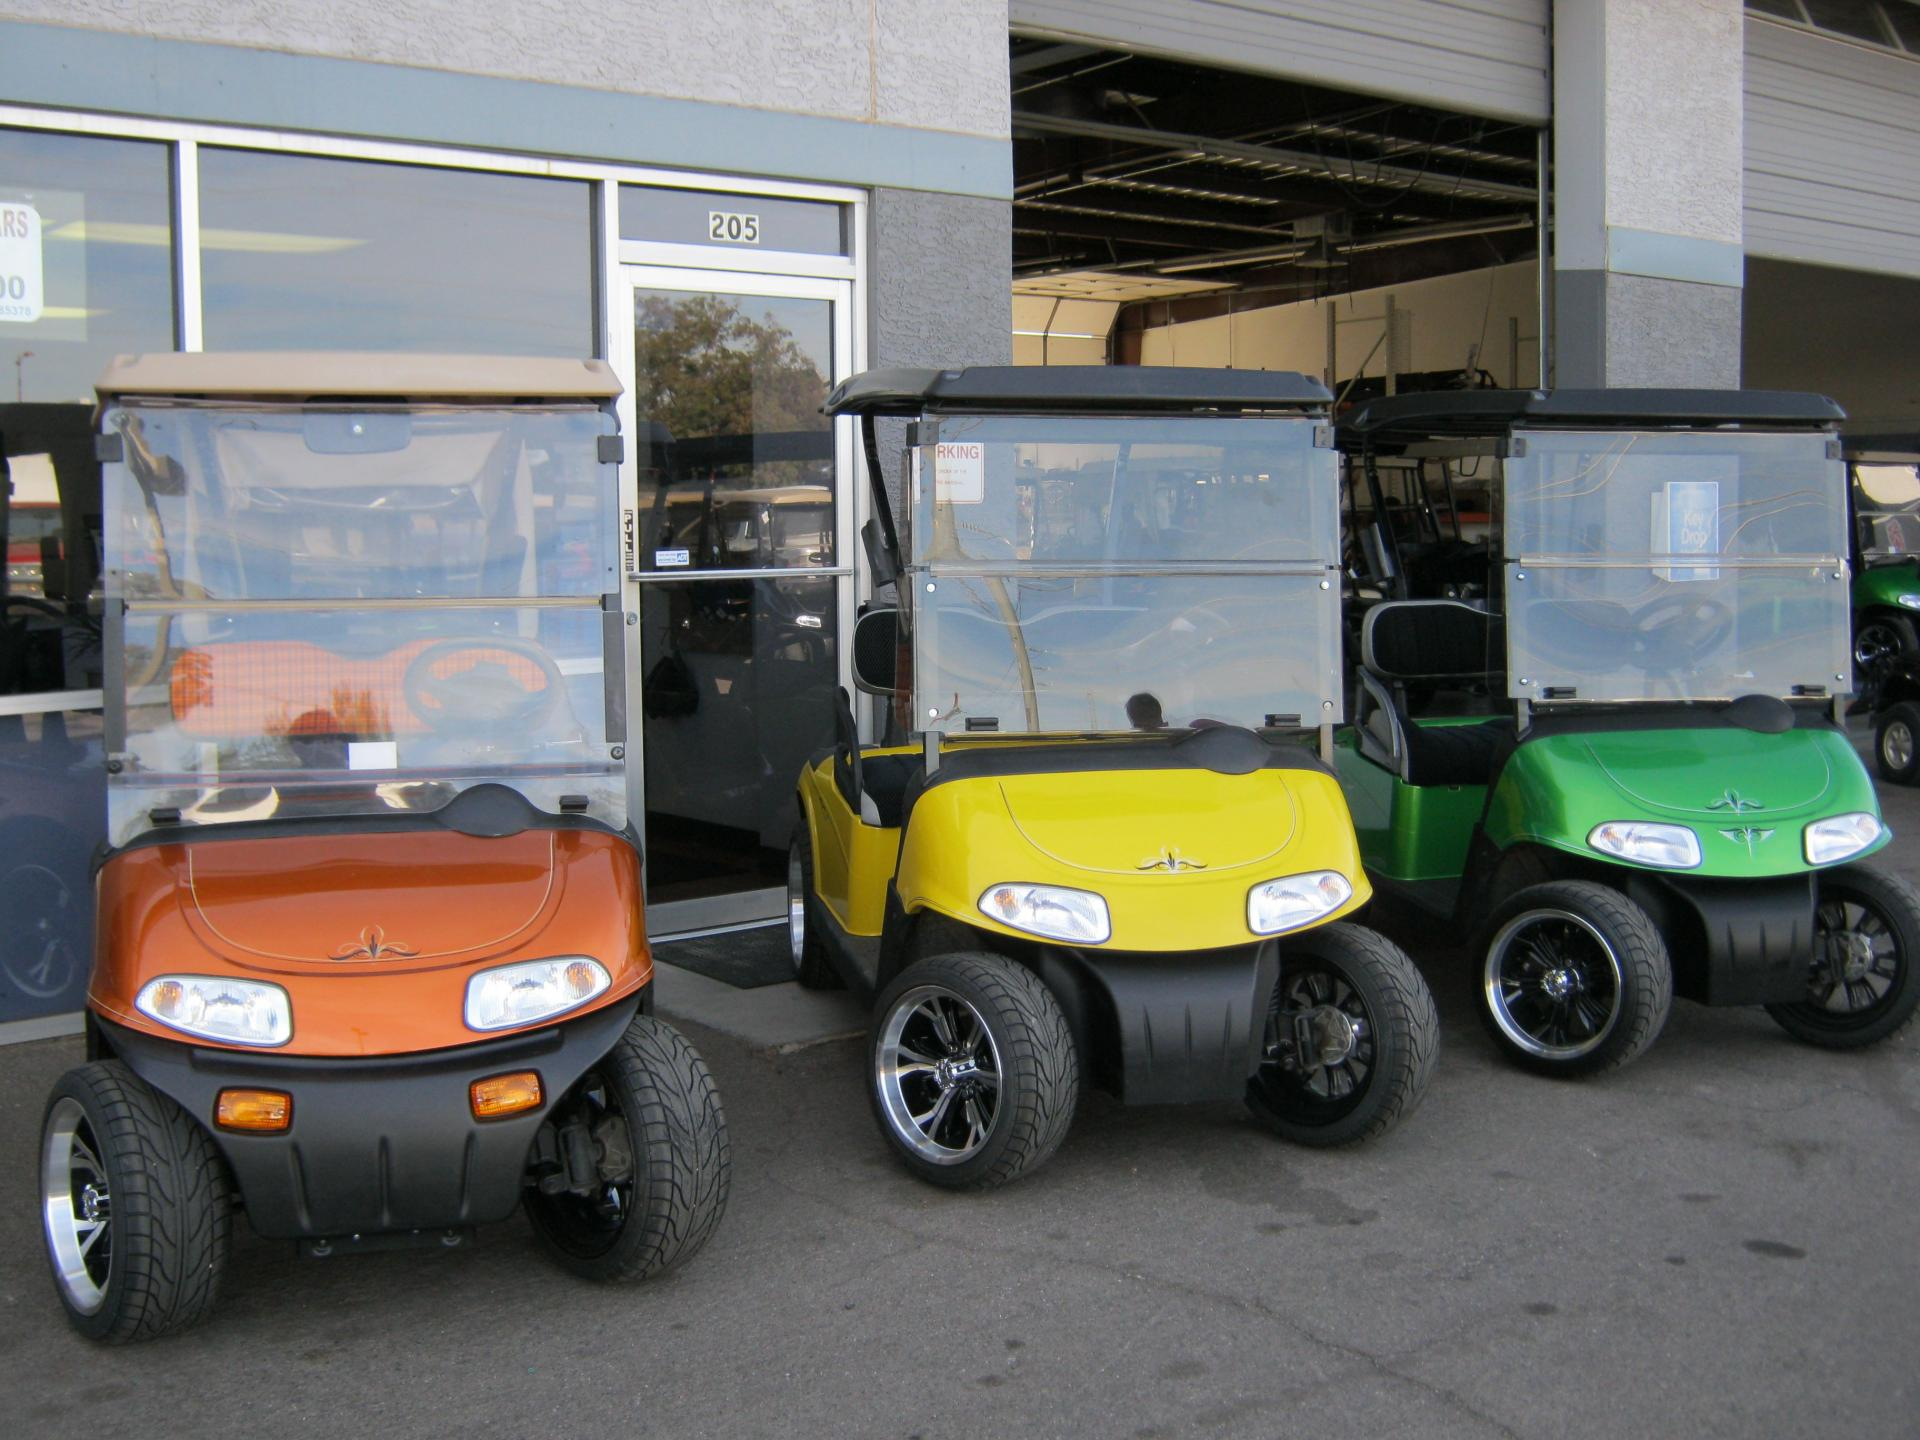 discount tool carts, discount shoes, cheap book carts, discount golf mats, on golf cart discount